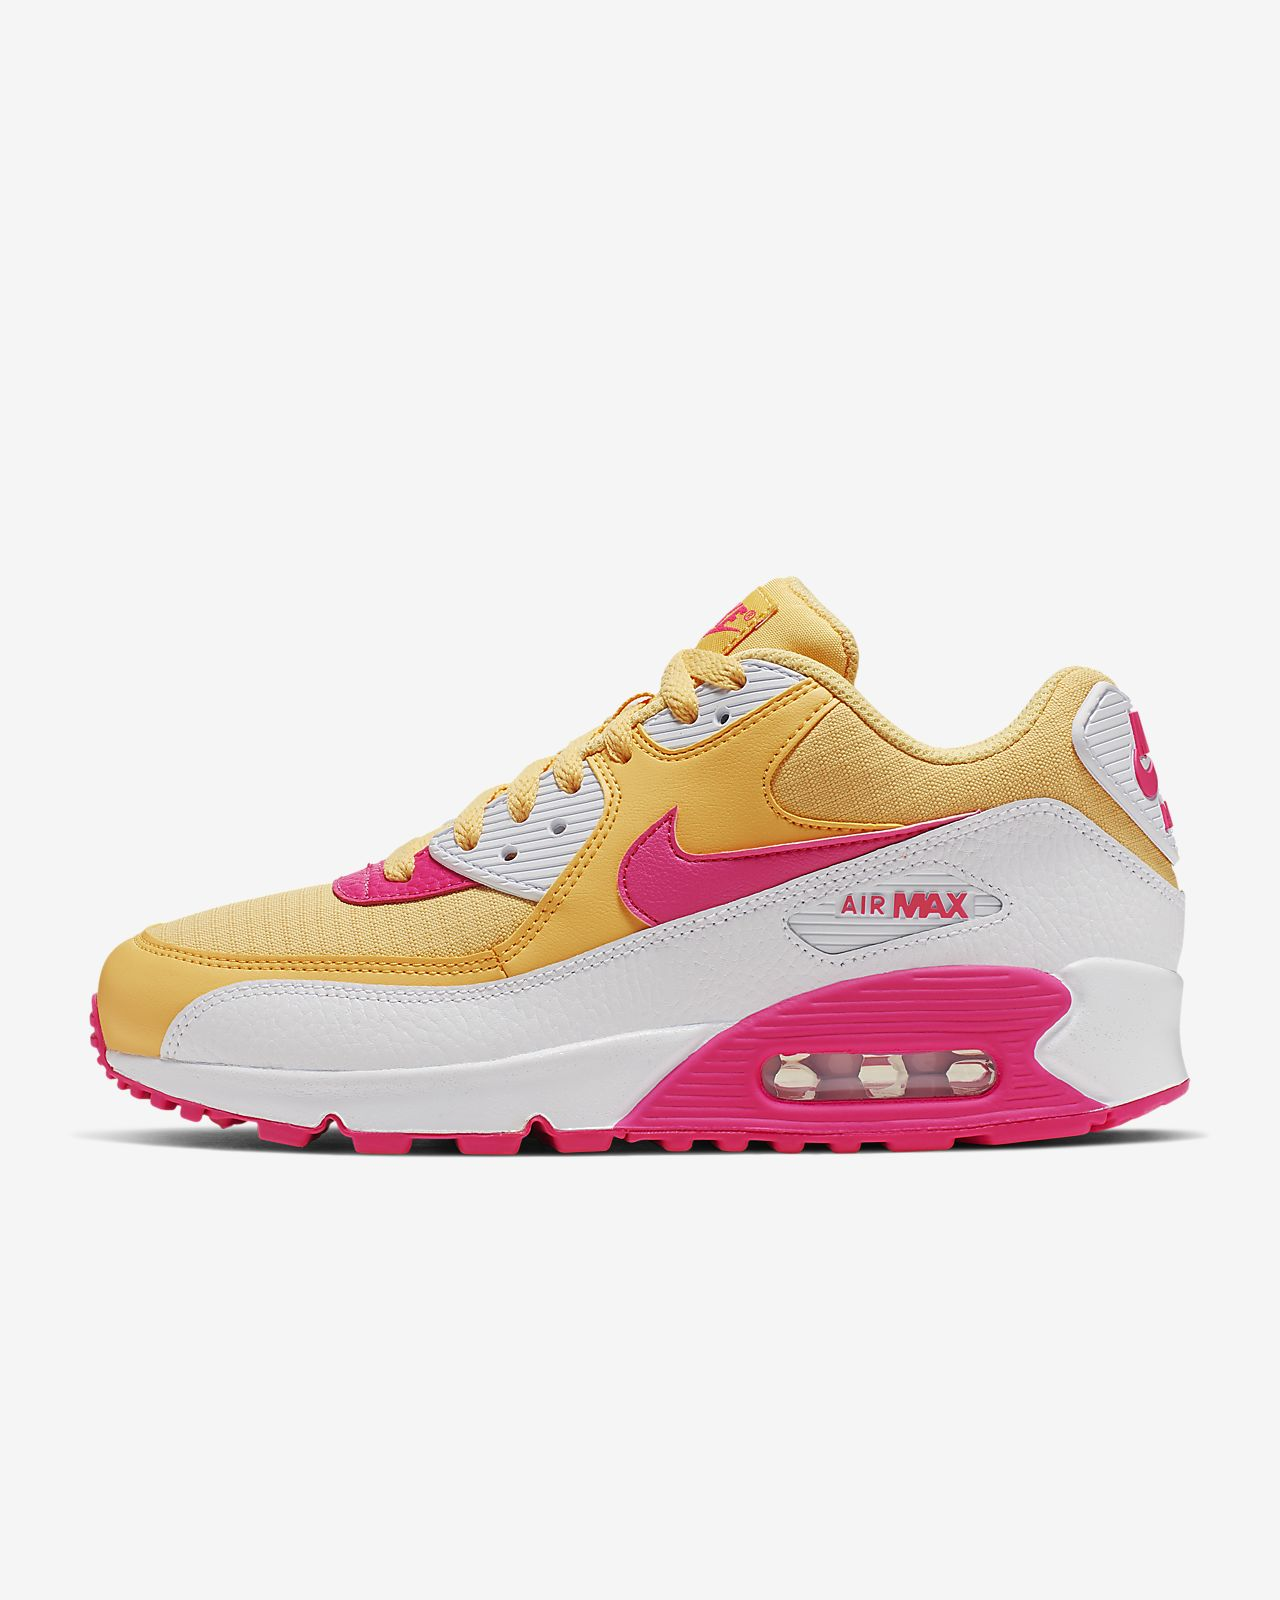 new products 69f59 2690c Nike Air Max 90 Women s Shoe. Nike.com